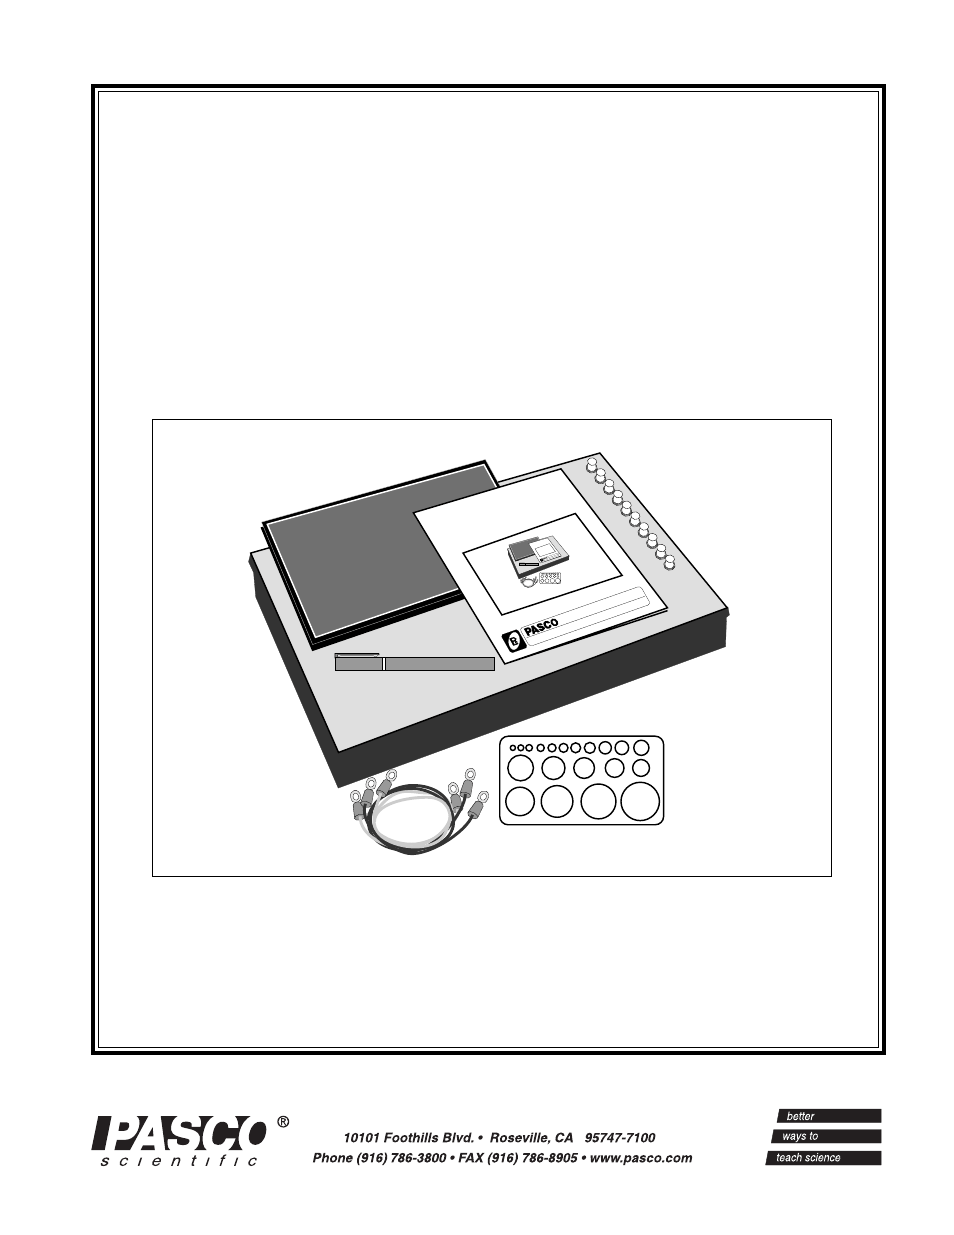 PASCO PK-9023 EQUIPOTENTIAL AND FIELD MAPPER User Manual